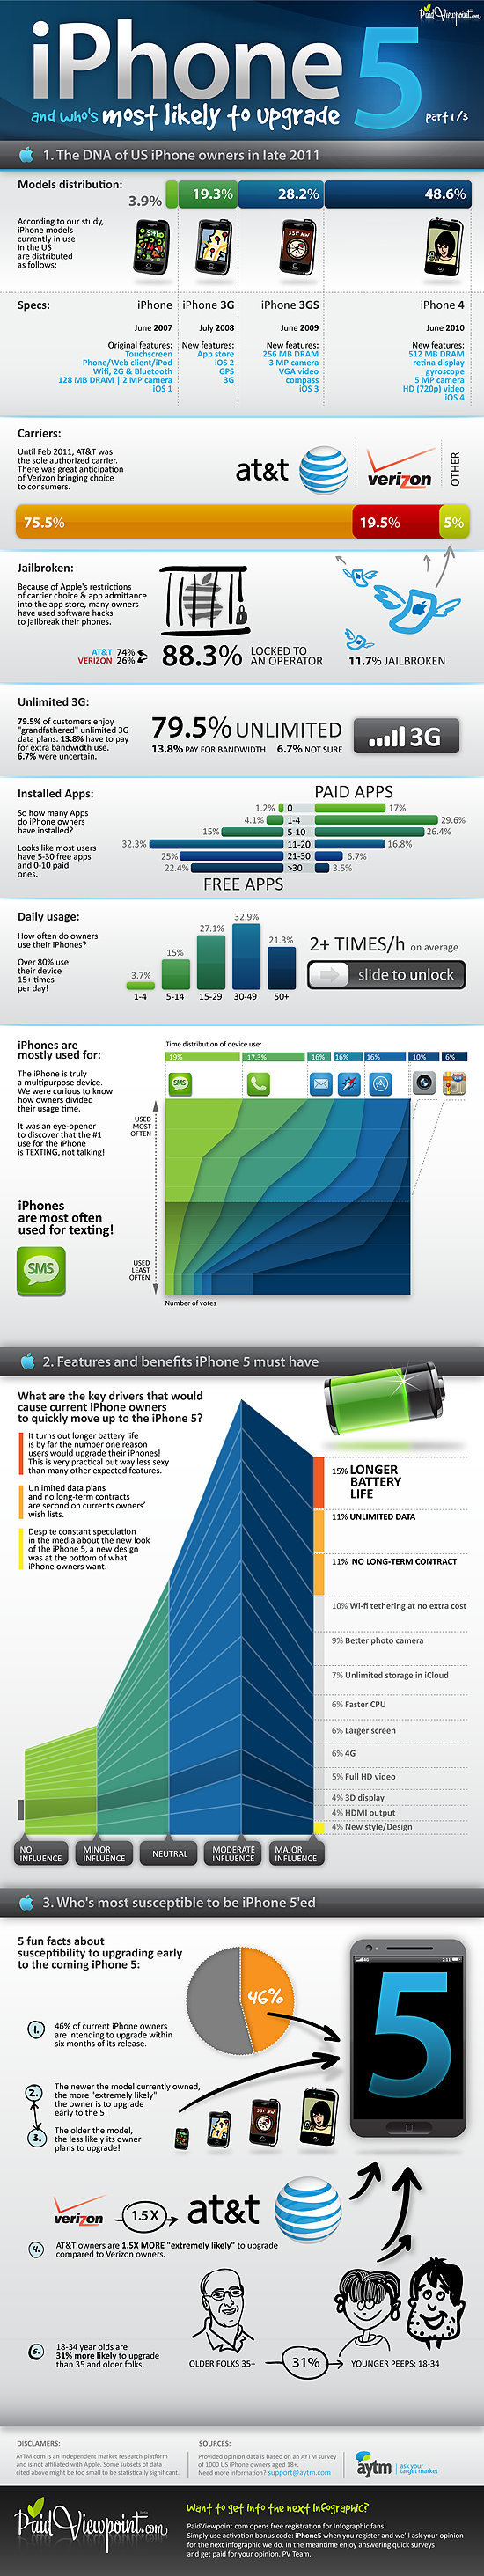 Infographic - iPhone 5